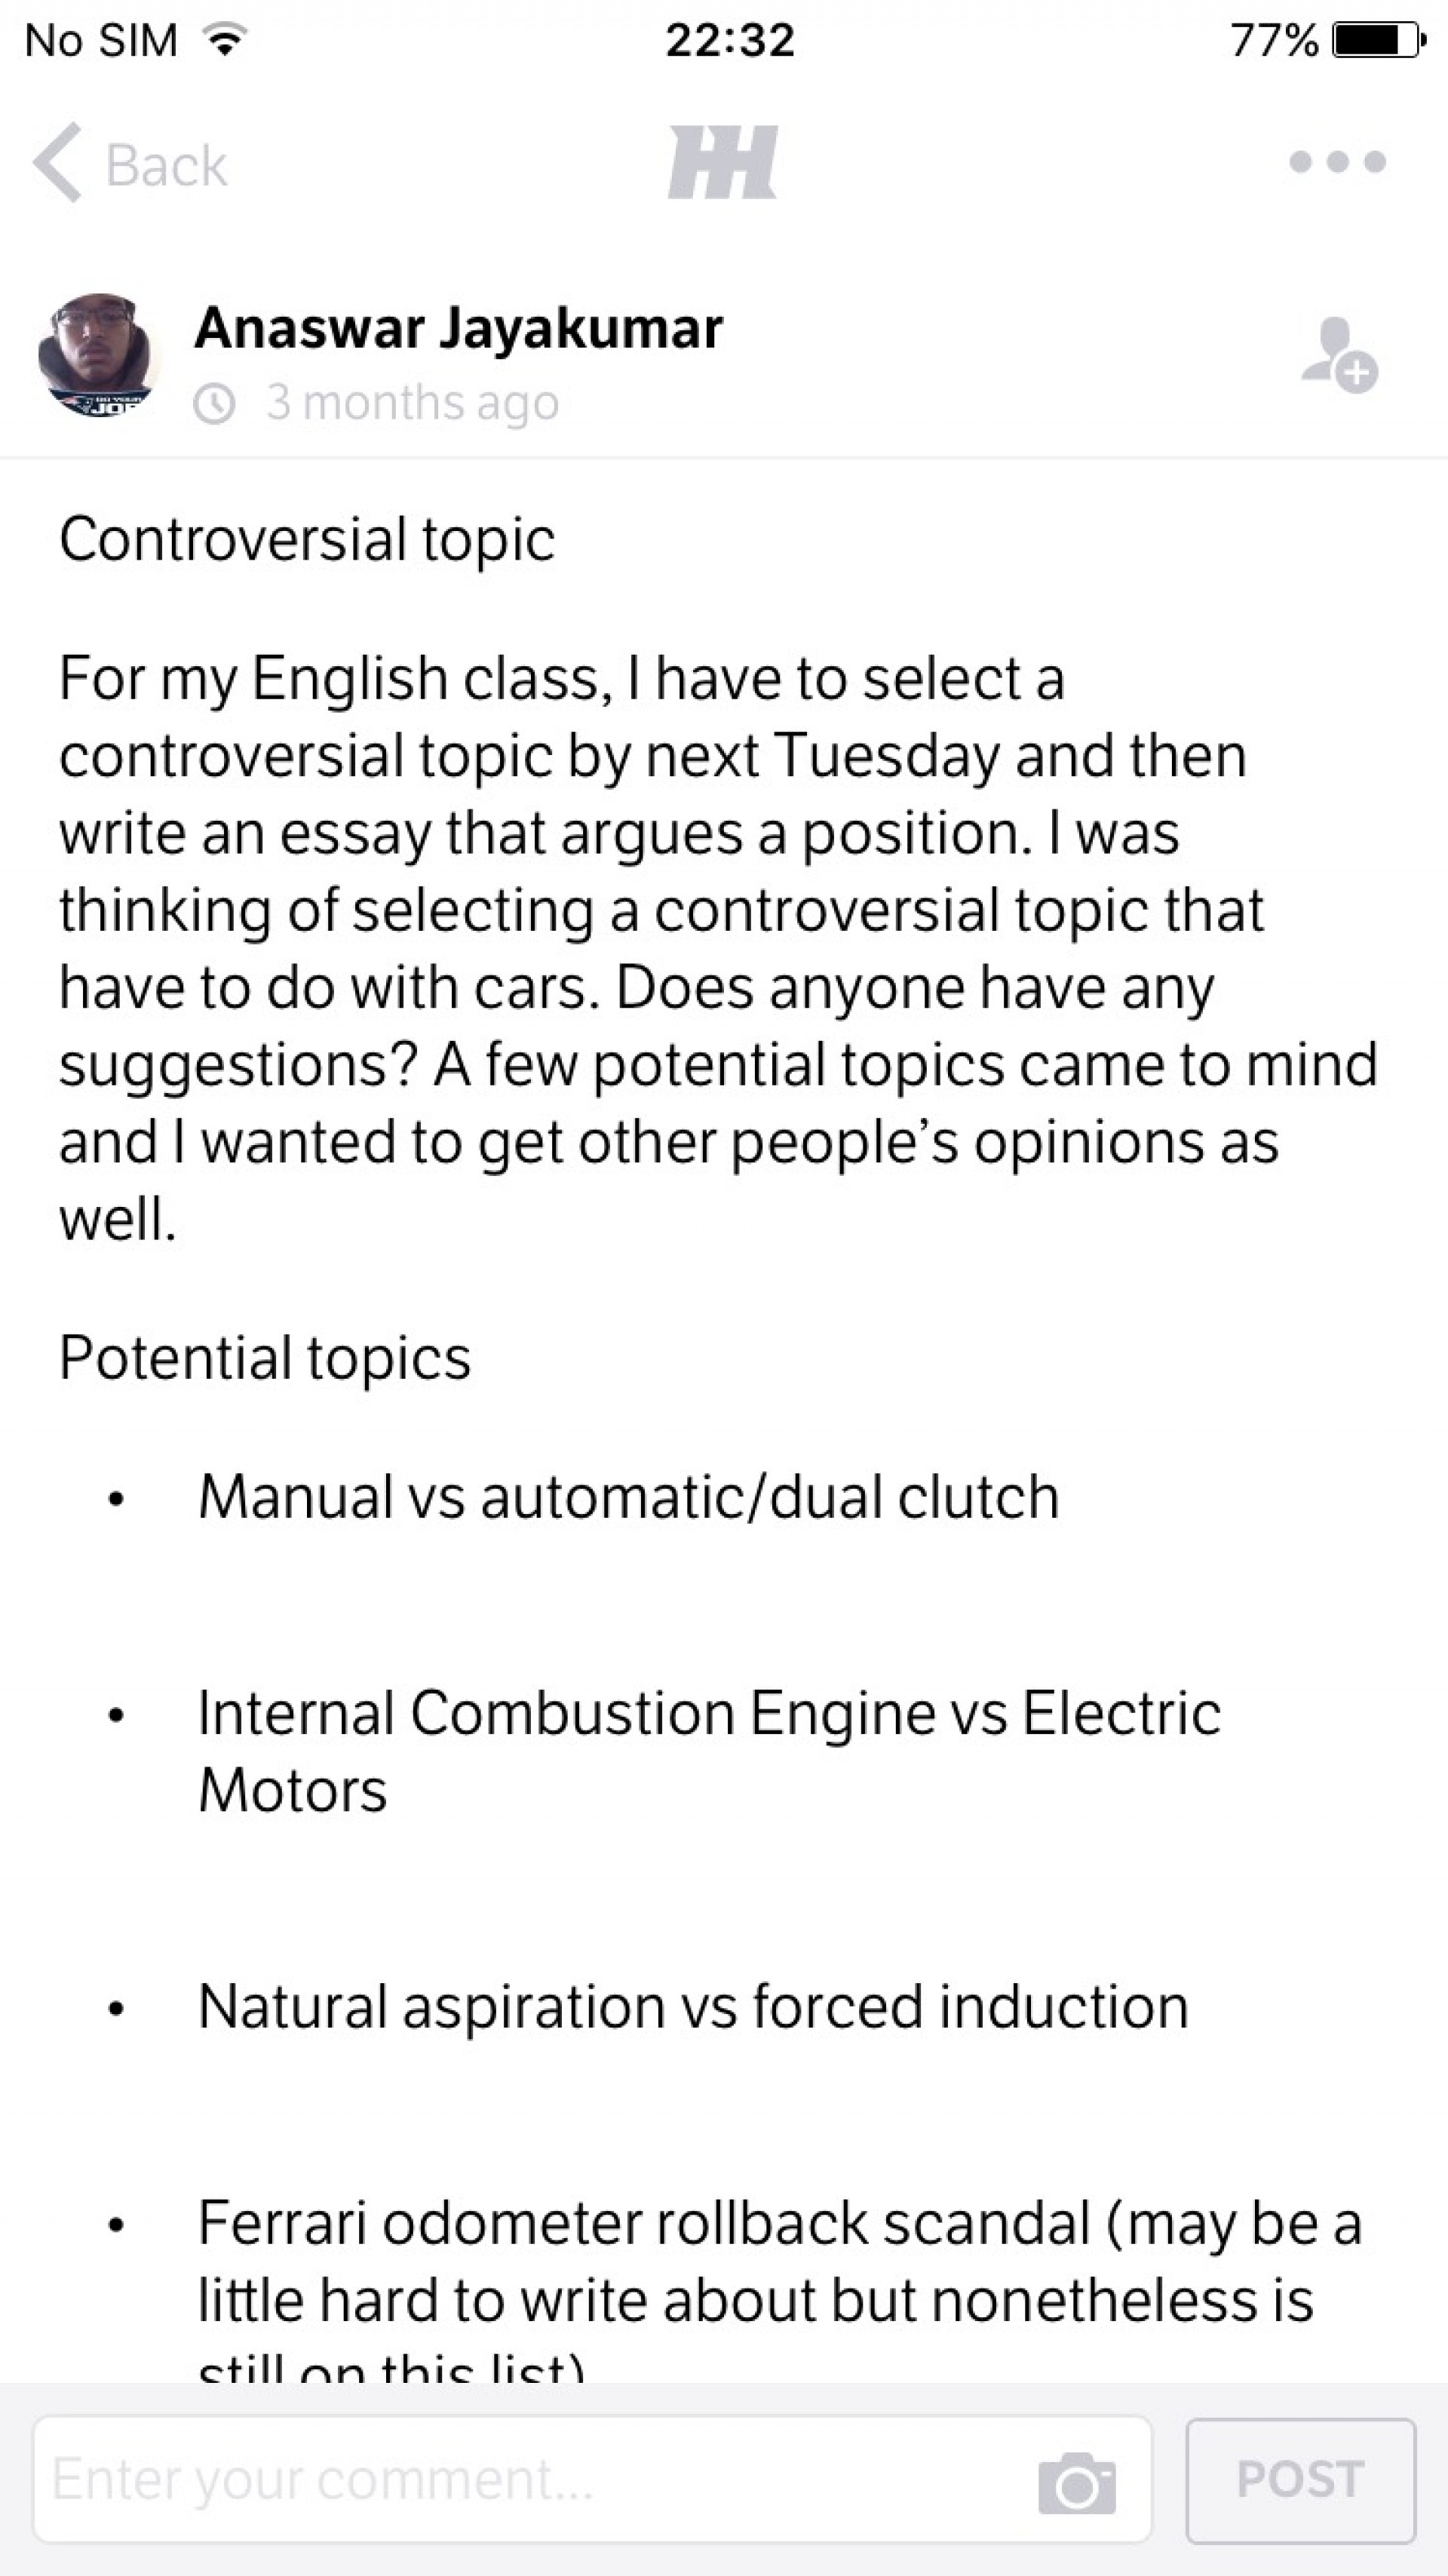 010 Controversial Topic Essay Topics Example Research Paper Outline Issue20 For Awful Papers Issues Easy 2017 1920